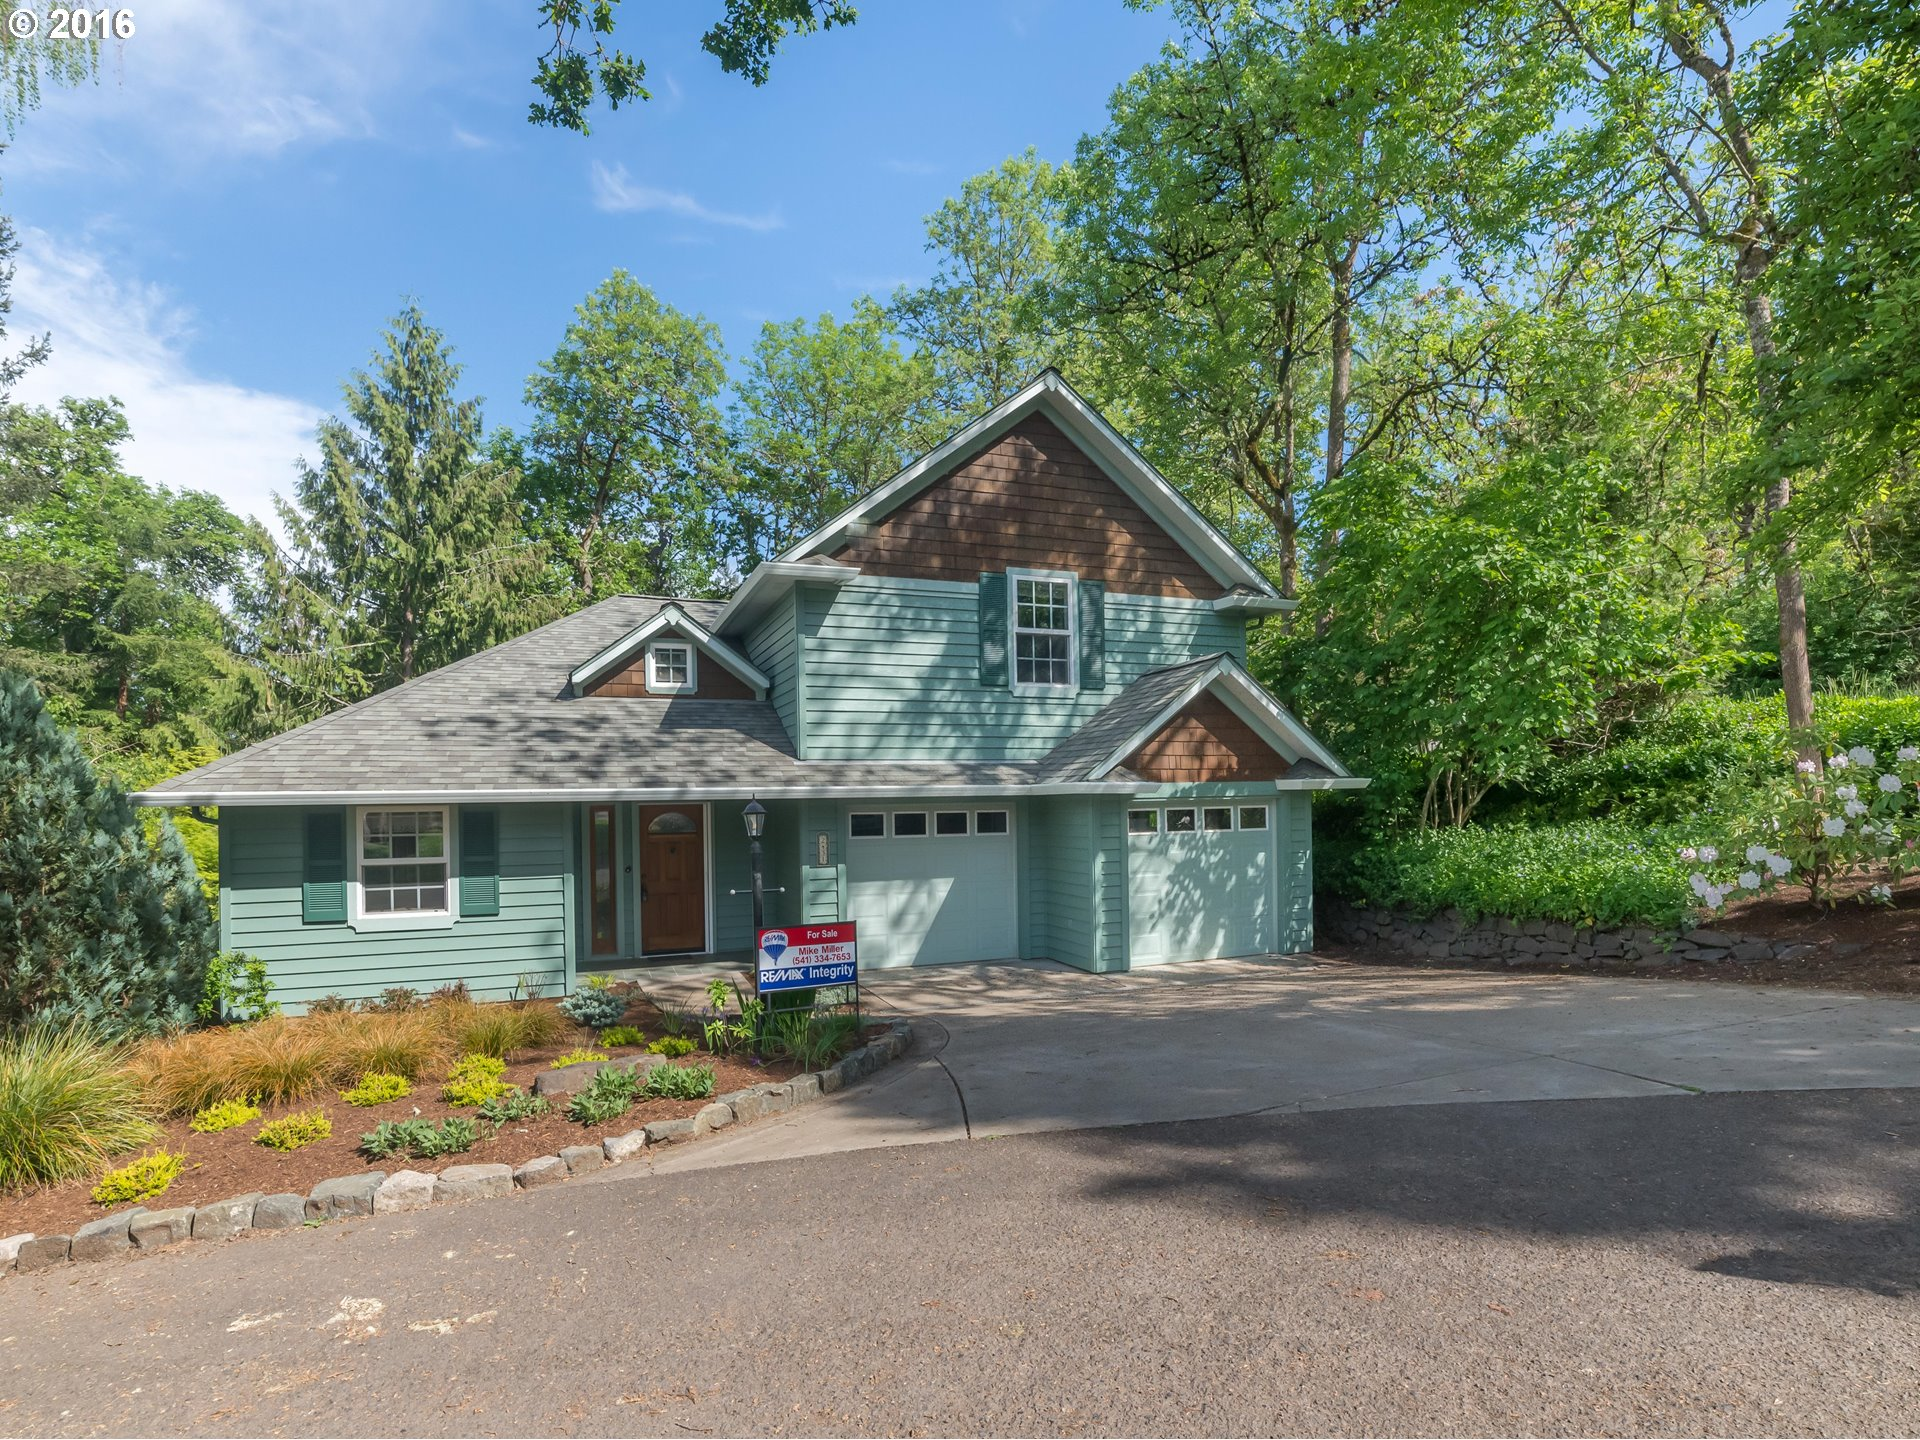 2431 City View St, Eugene, OR